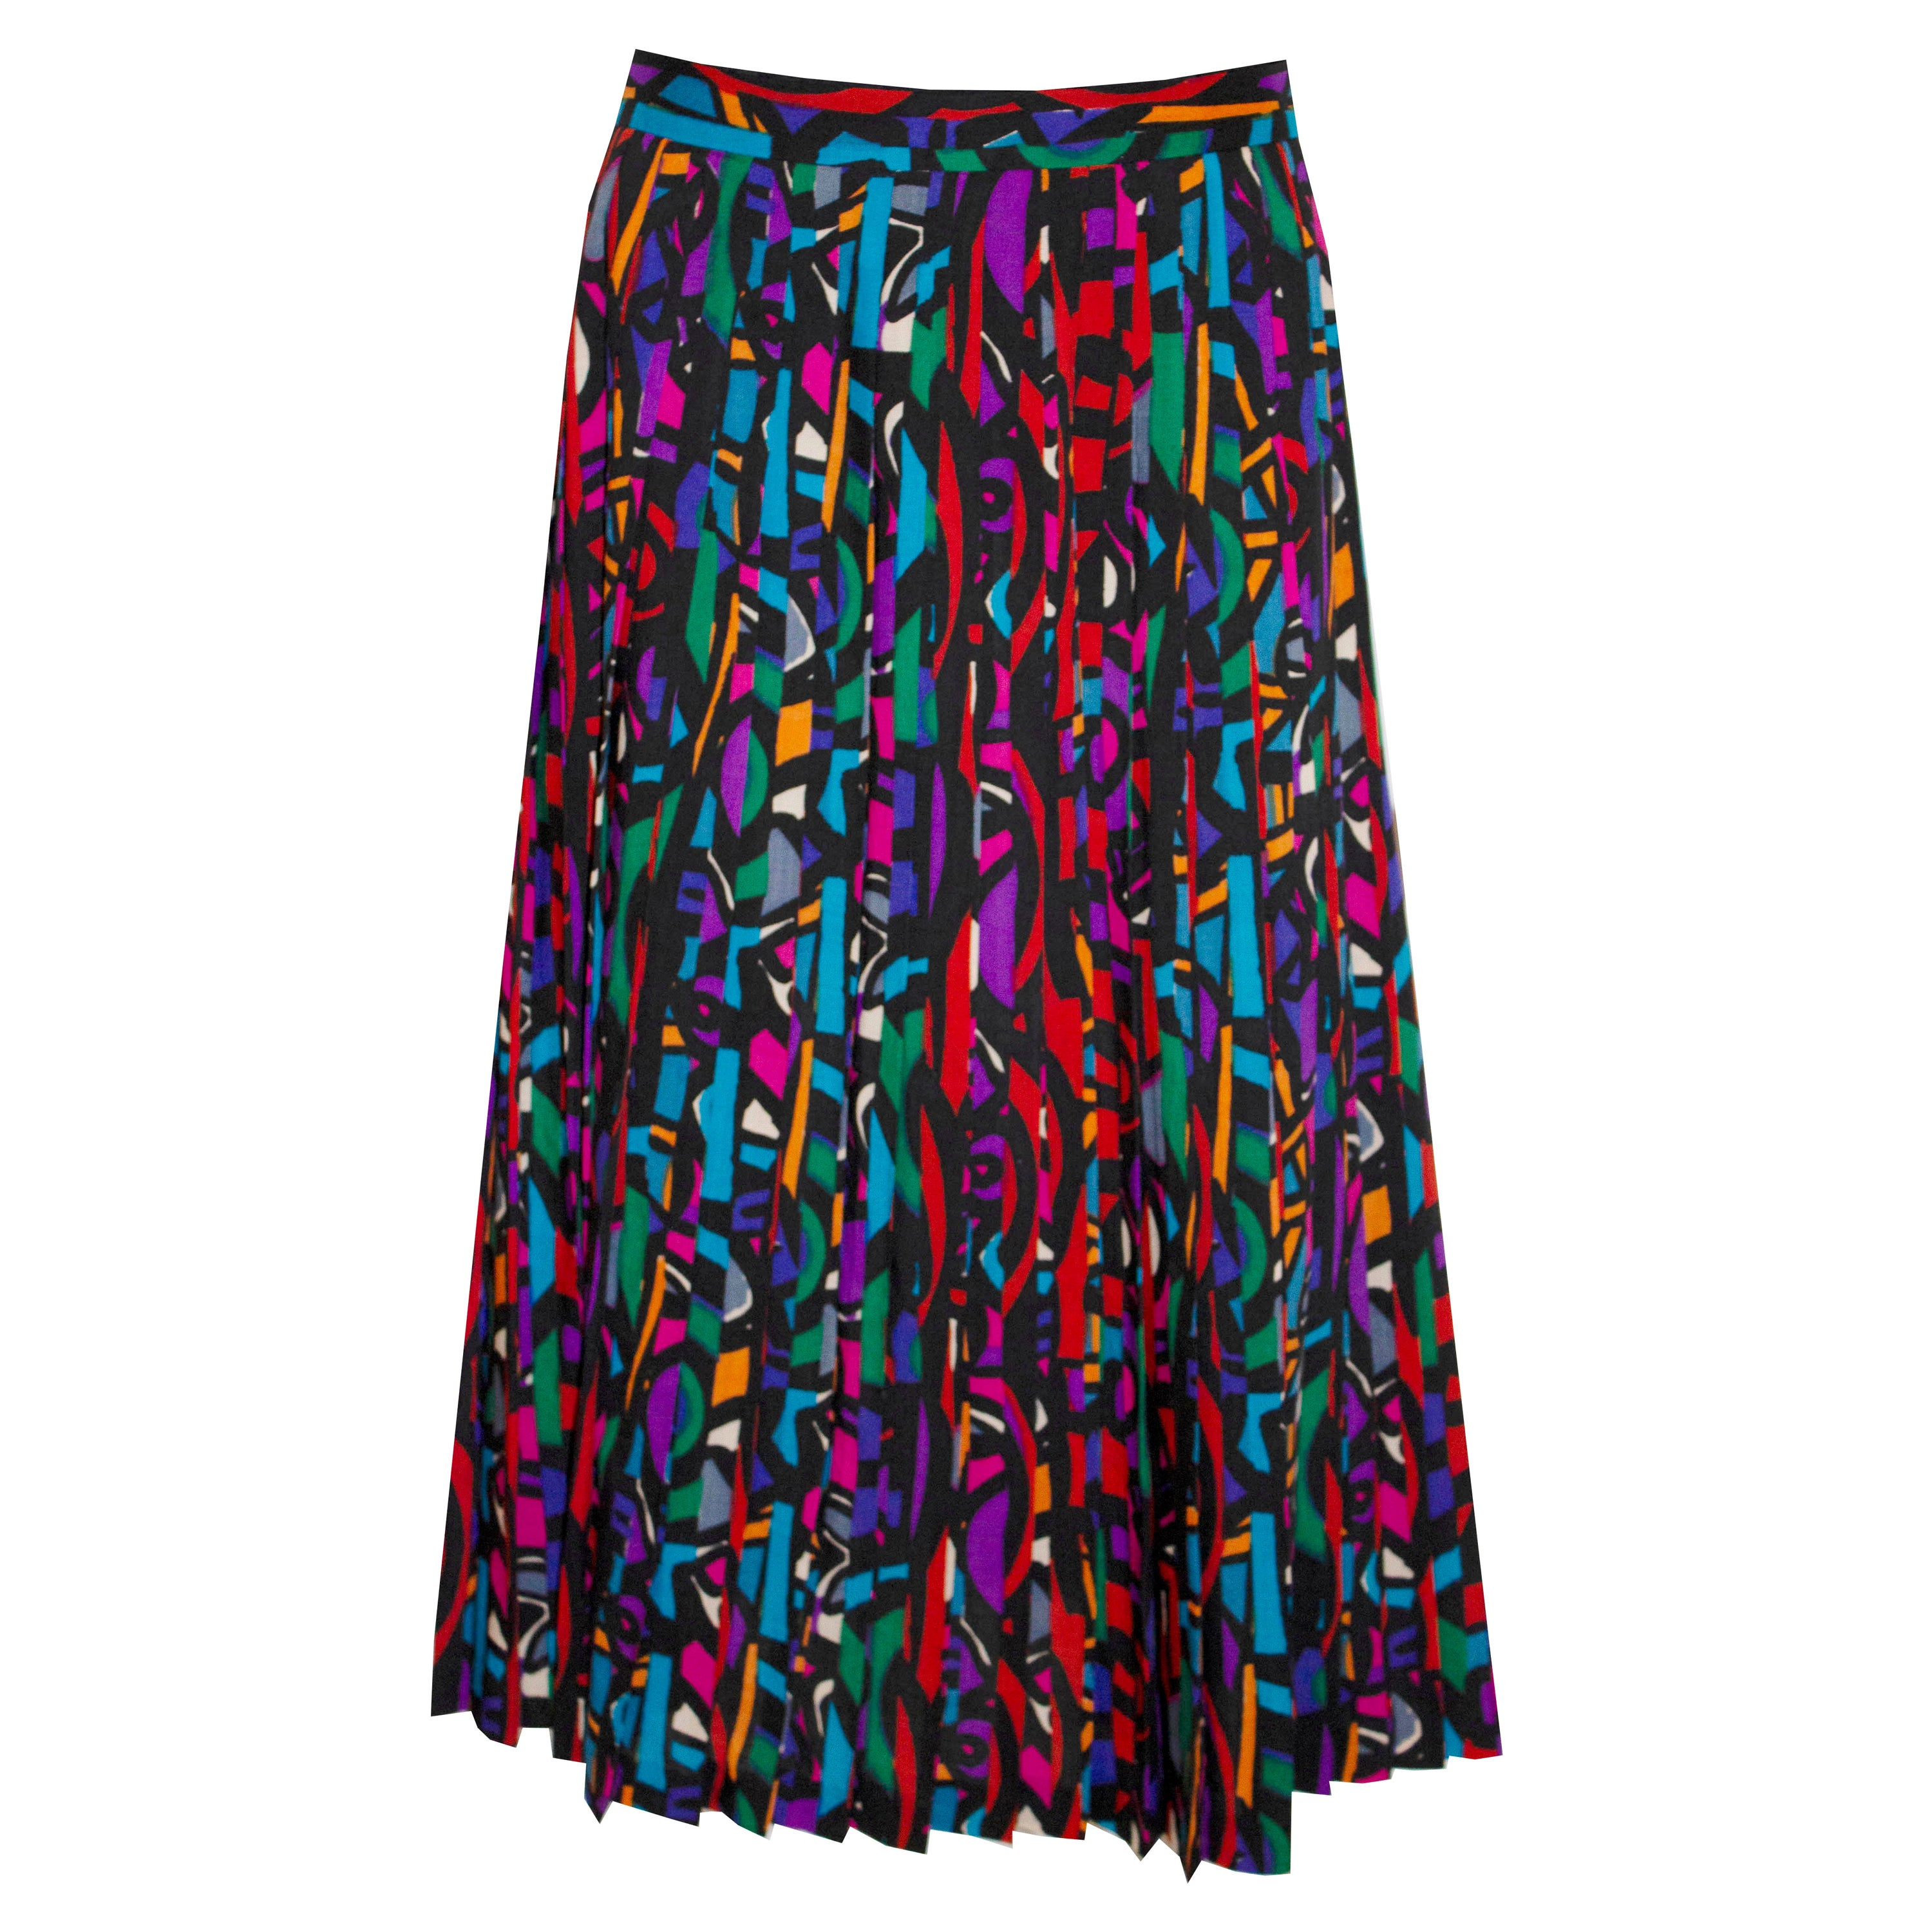 Vintage Jaeger Skirt  in a Pleated Print